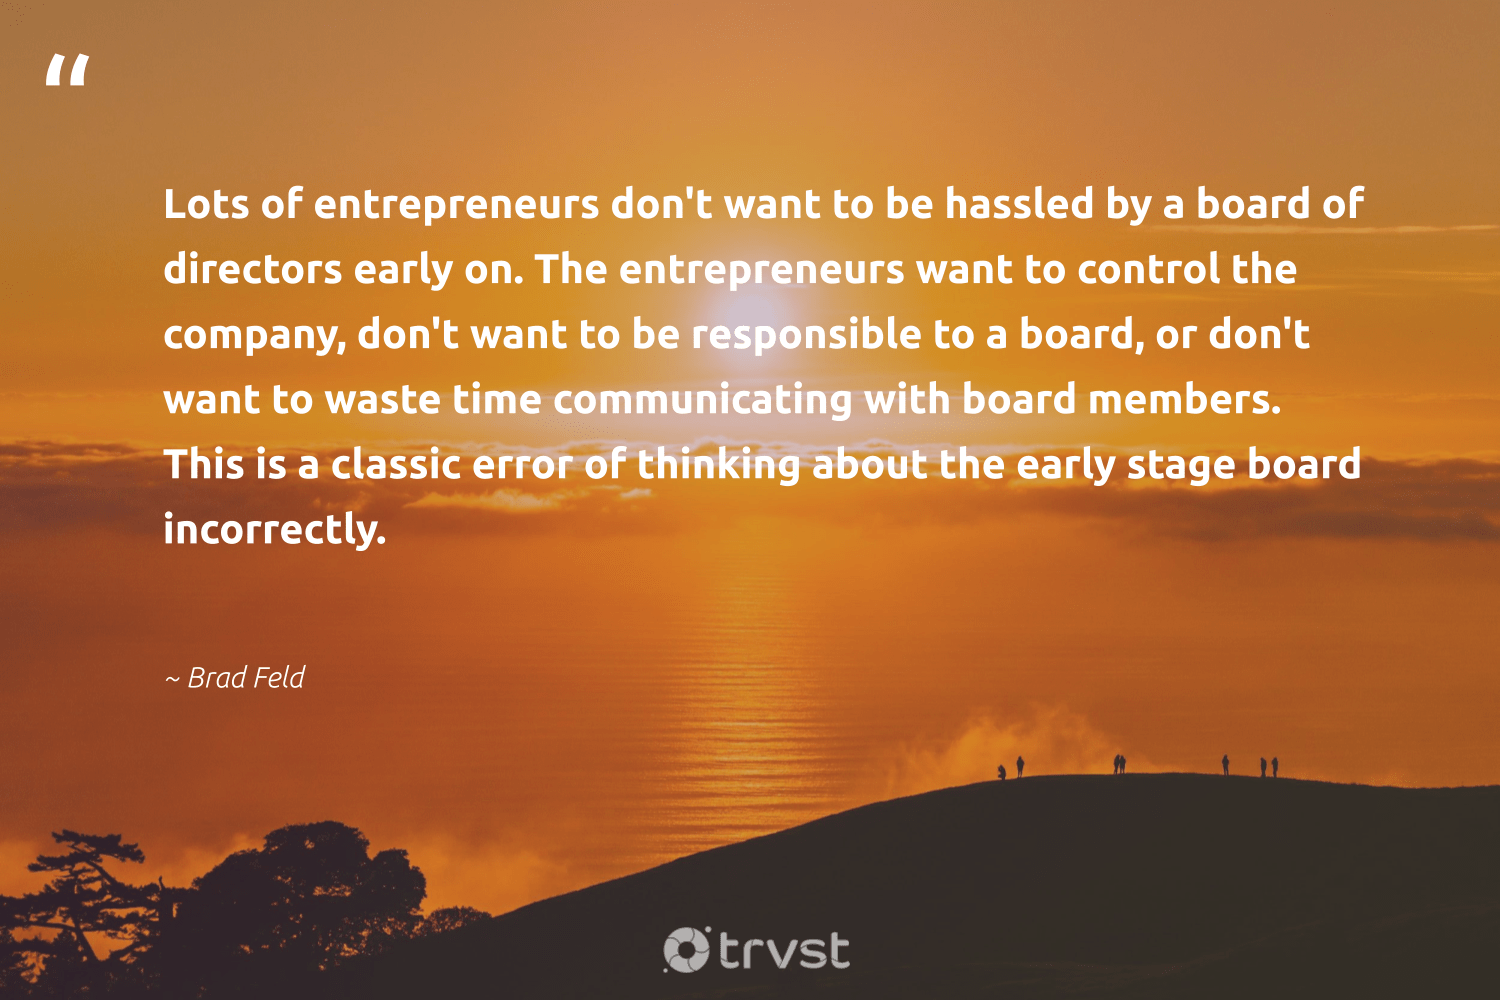 """""""Lots of entrepreneurs don't want to be hassled by a board of directors early on. The entrepreneurs want to control the company, don't want to be responsible to a board, or don't want to waste time communicating with board members. This is a classic error of thinking about the early stage board incorrectly.""""  - Brad Feld #trvst #quotes #waste #makeadifference #socialchange #weareallone #takeaction #betterplanet #gogreen #giveback #dotherightthing #dogood"""